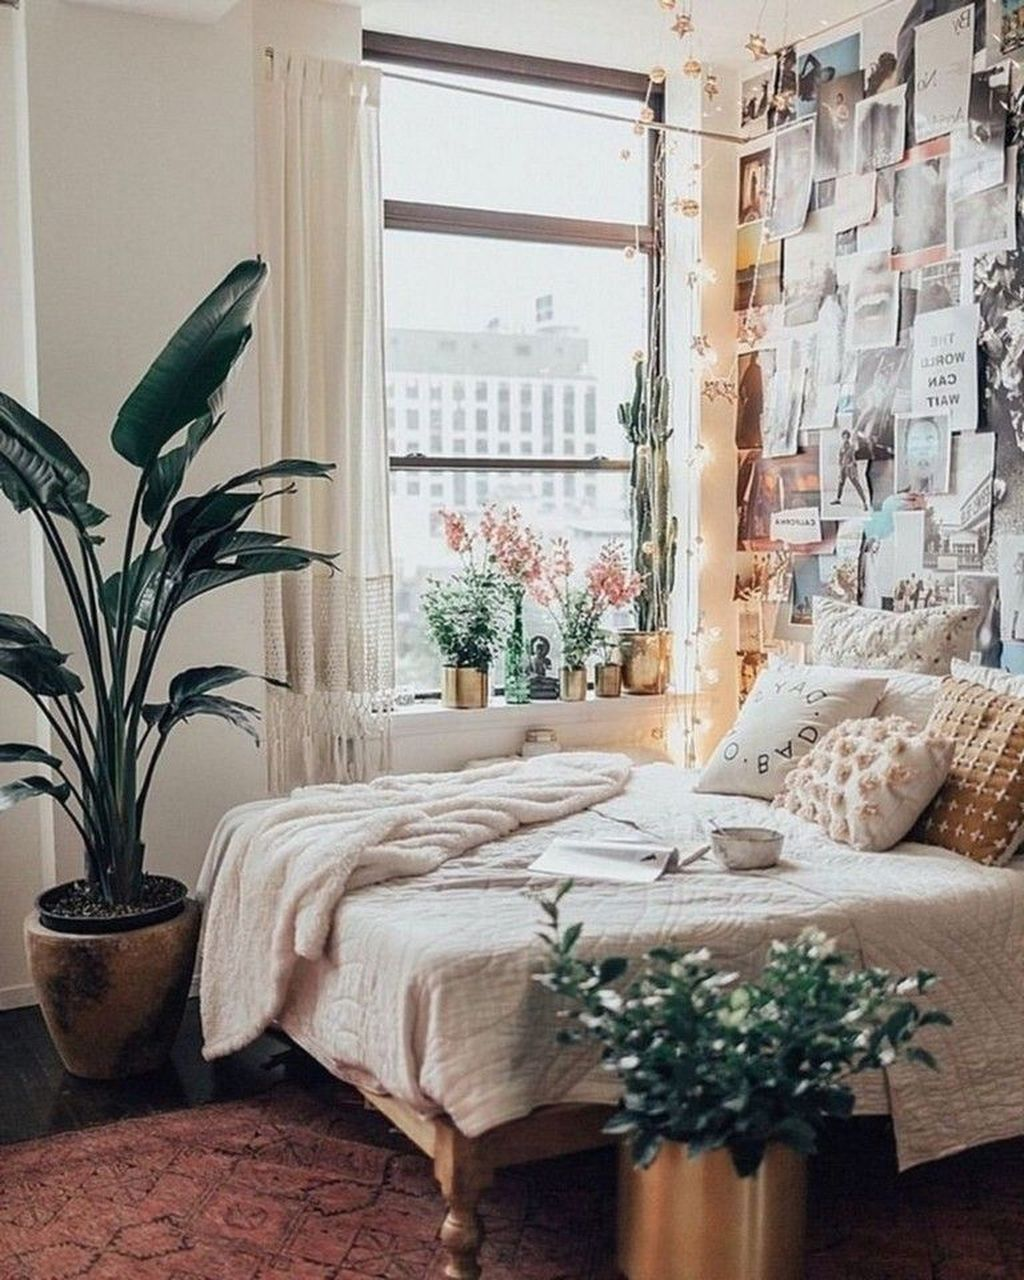 30 Affordable Bedroom Ideas For Apartment Affordable Bedroom Bedroom Diy Romantic Bedroom Decor